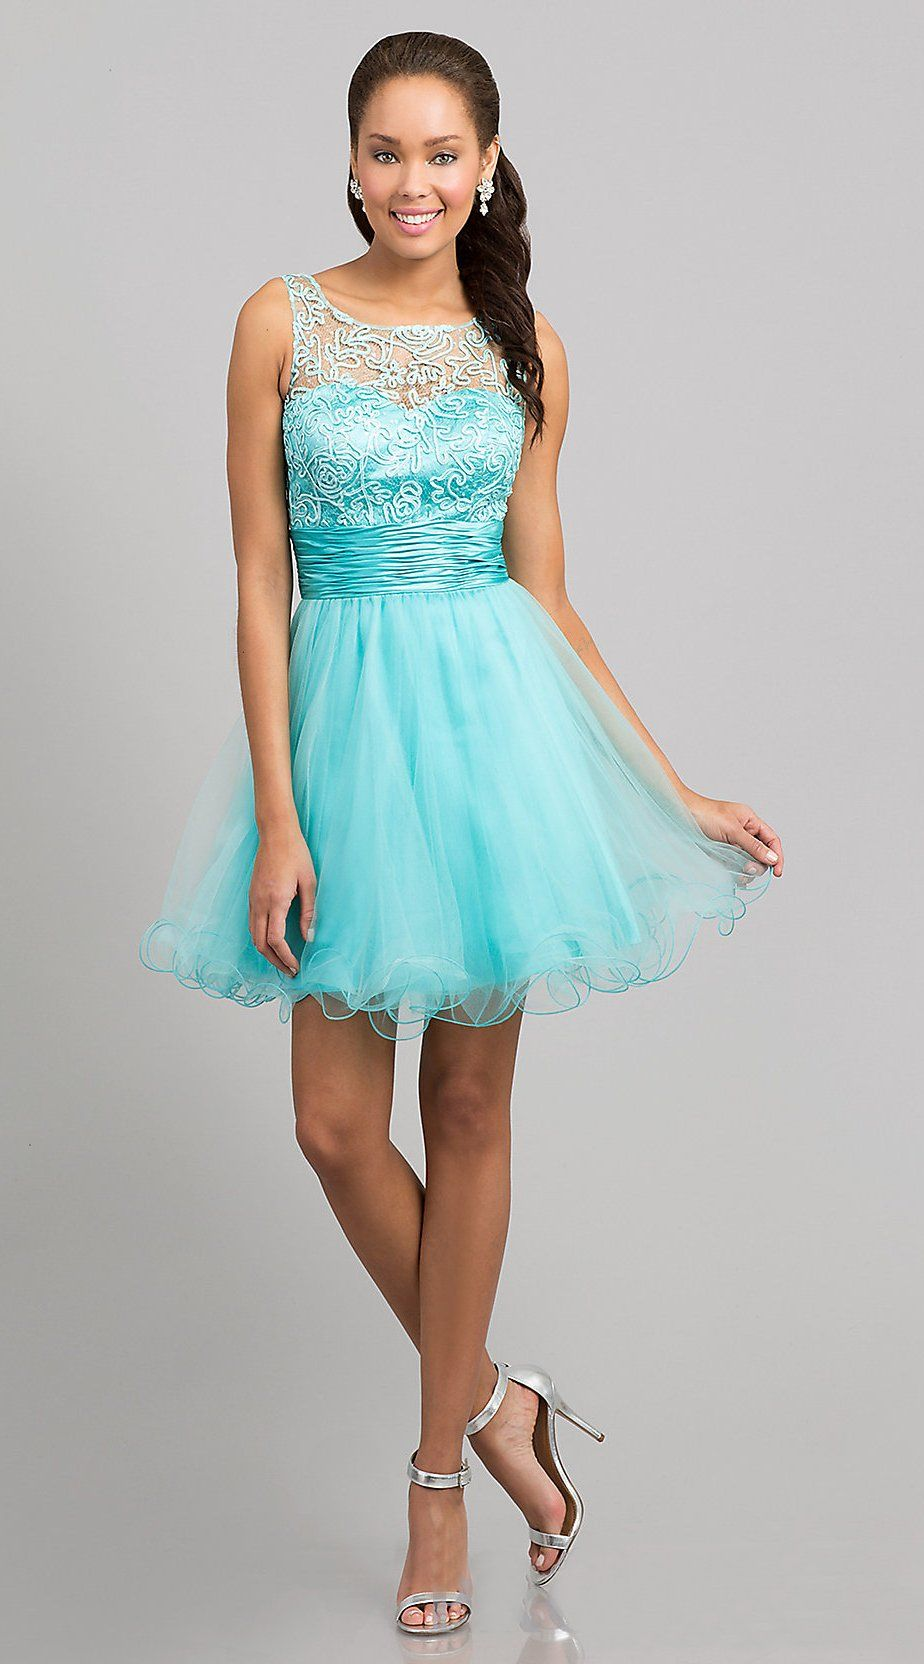 Baby Doll A Line Short Mint Blue Prom Dress Lace Poofy Wide Strap ...